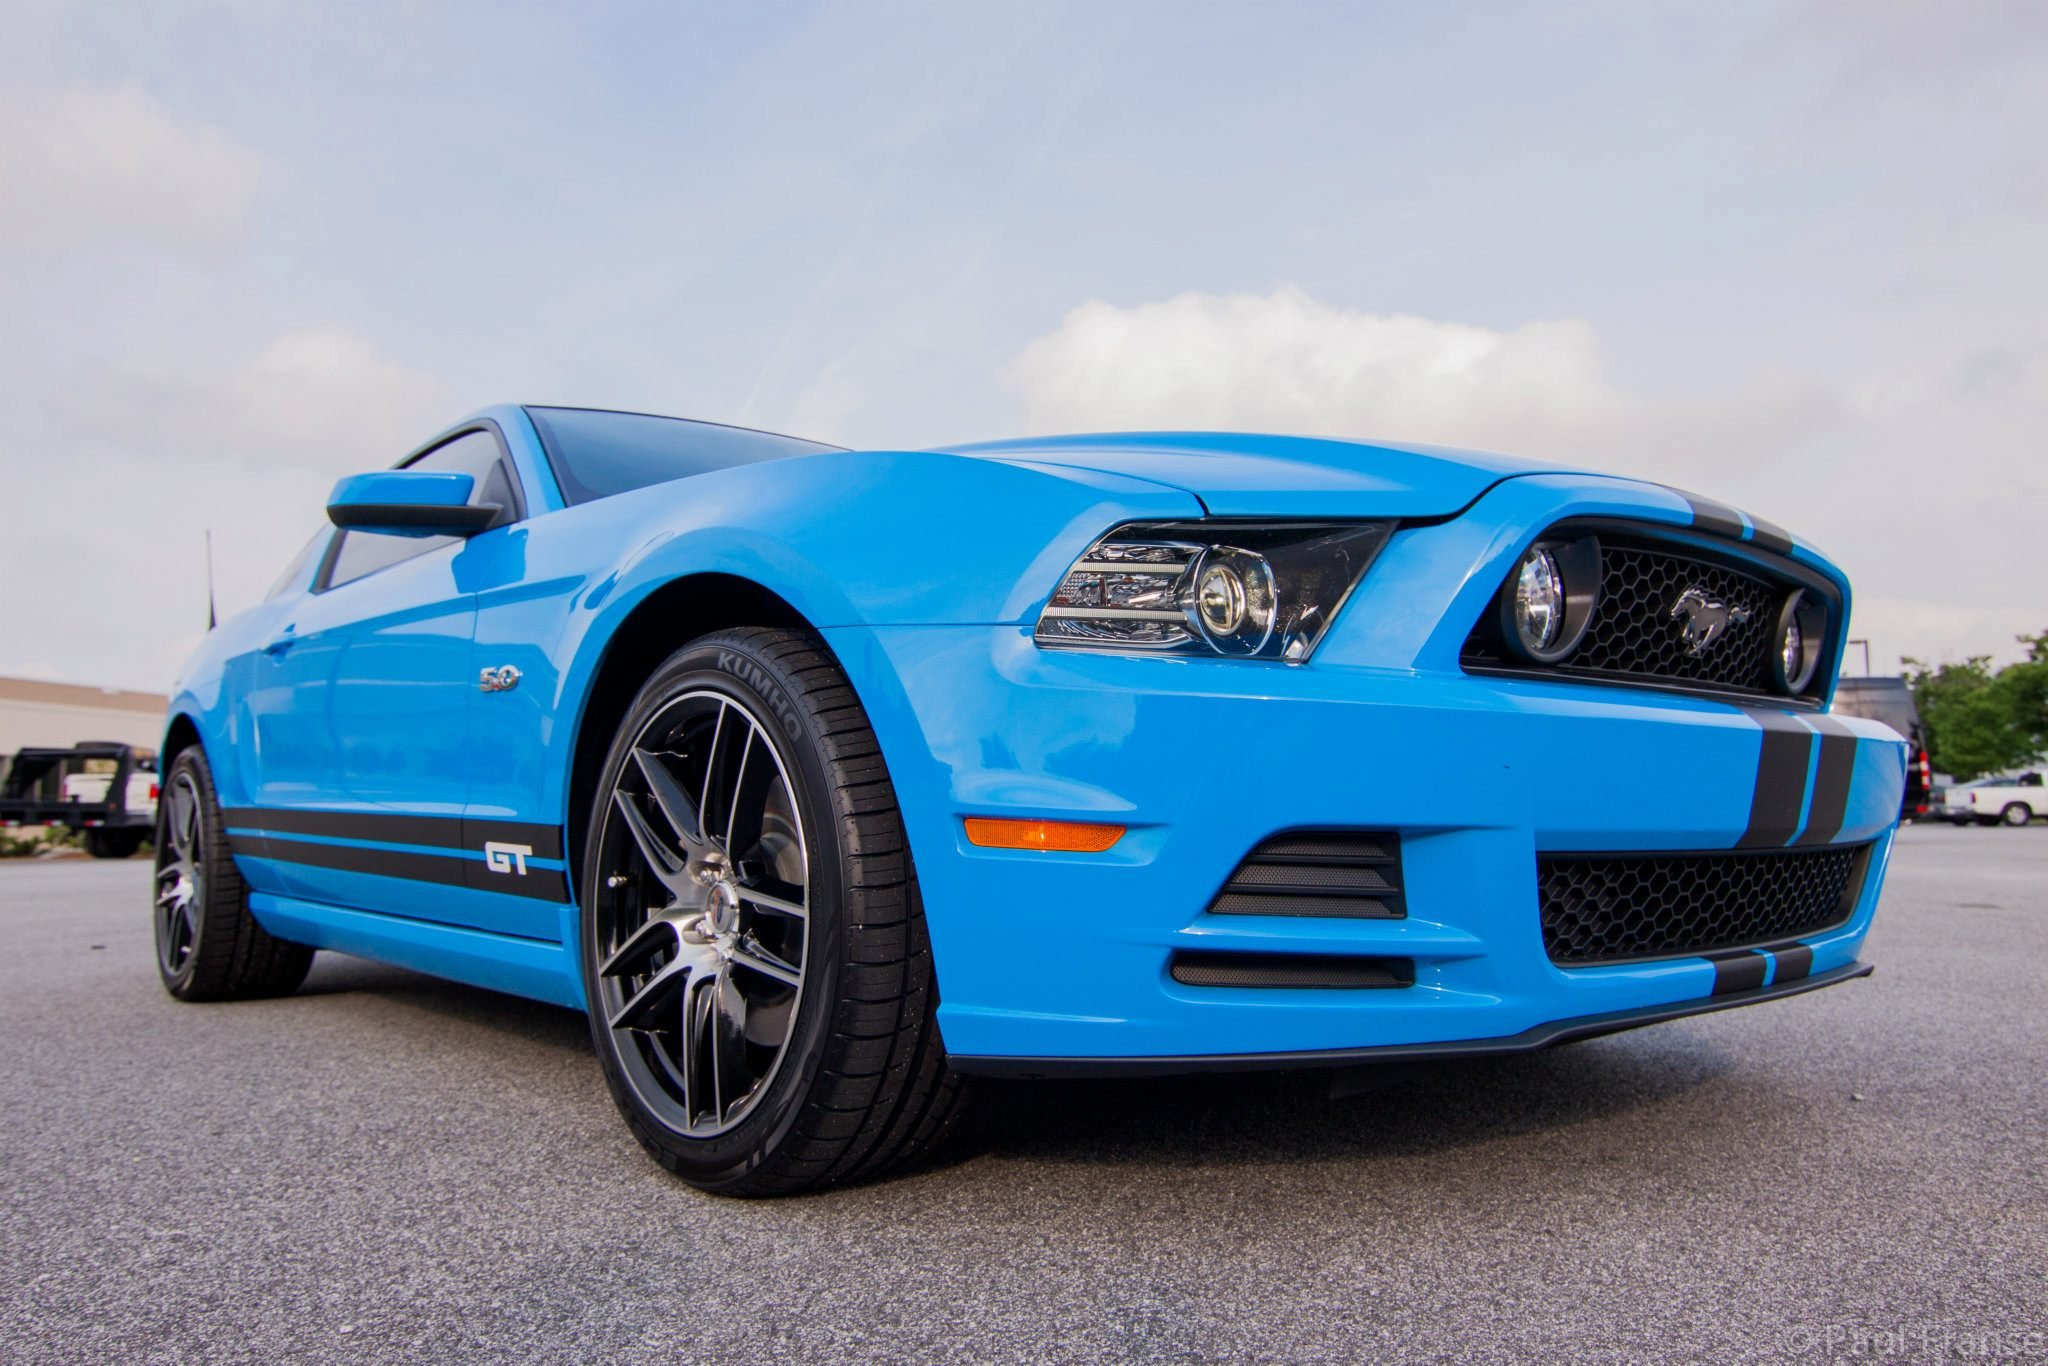 My new 2013 Grabber Blue GT!-54801_10150905602848664_506058663_9765834_1644079639_o.jpg